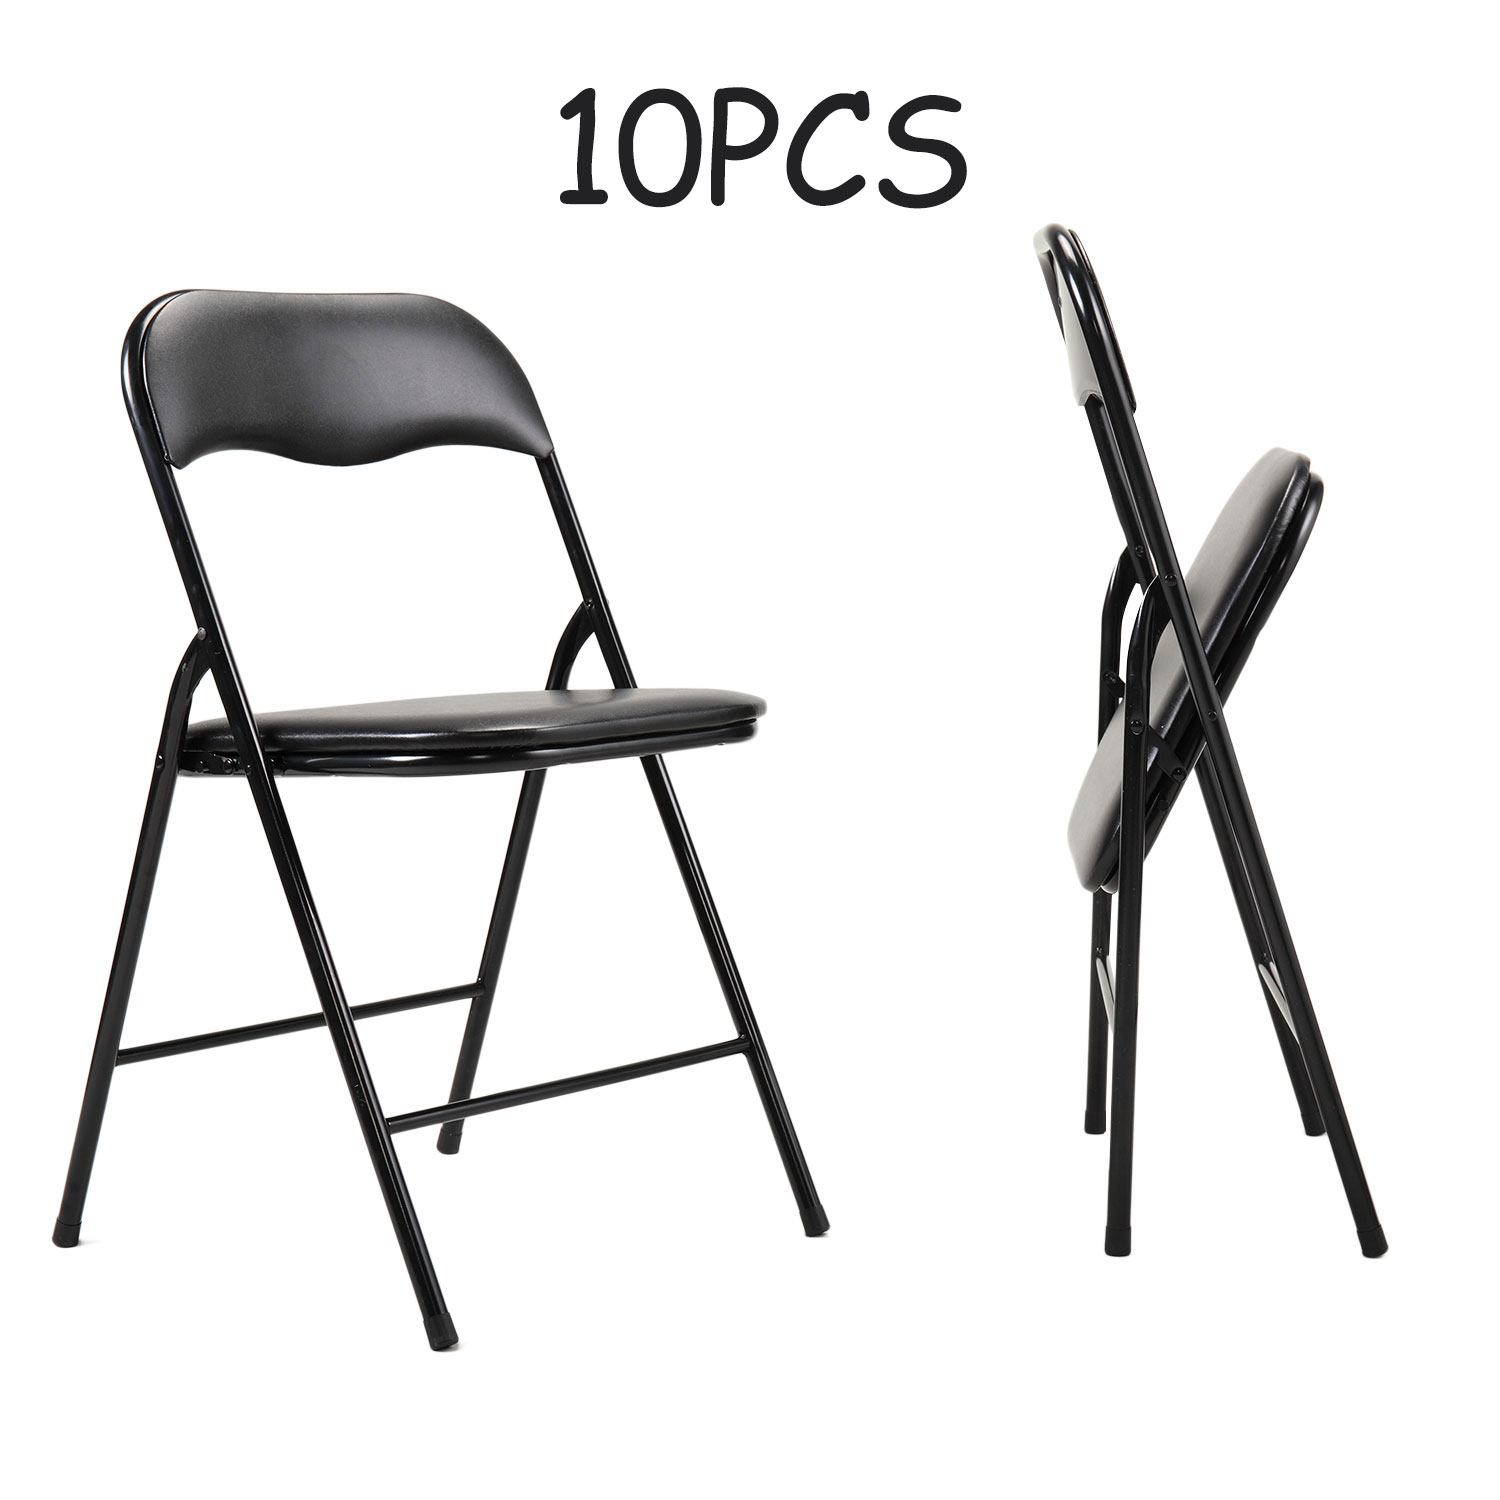 Jaxpety 10 Pack Commercial Plastic Folding Chairs Black Stackable Wedding Party Event Chair W Soft Cushion Seat Outdoor Indoor Walmart Com Walmart Com